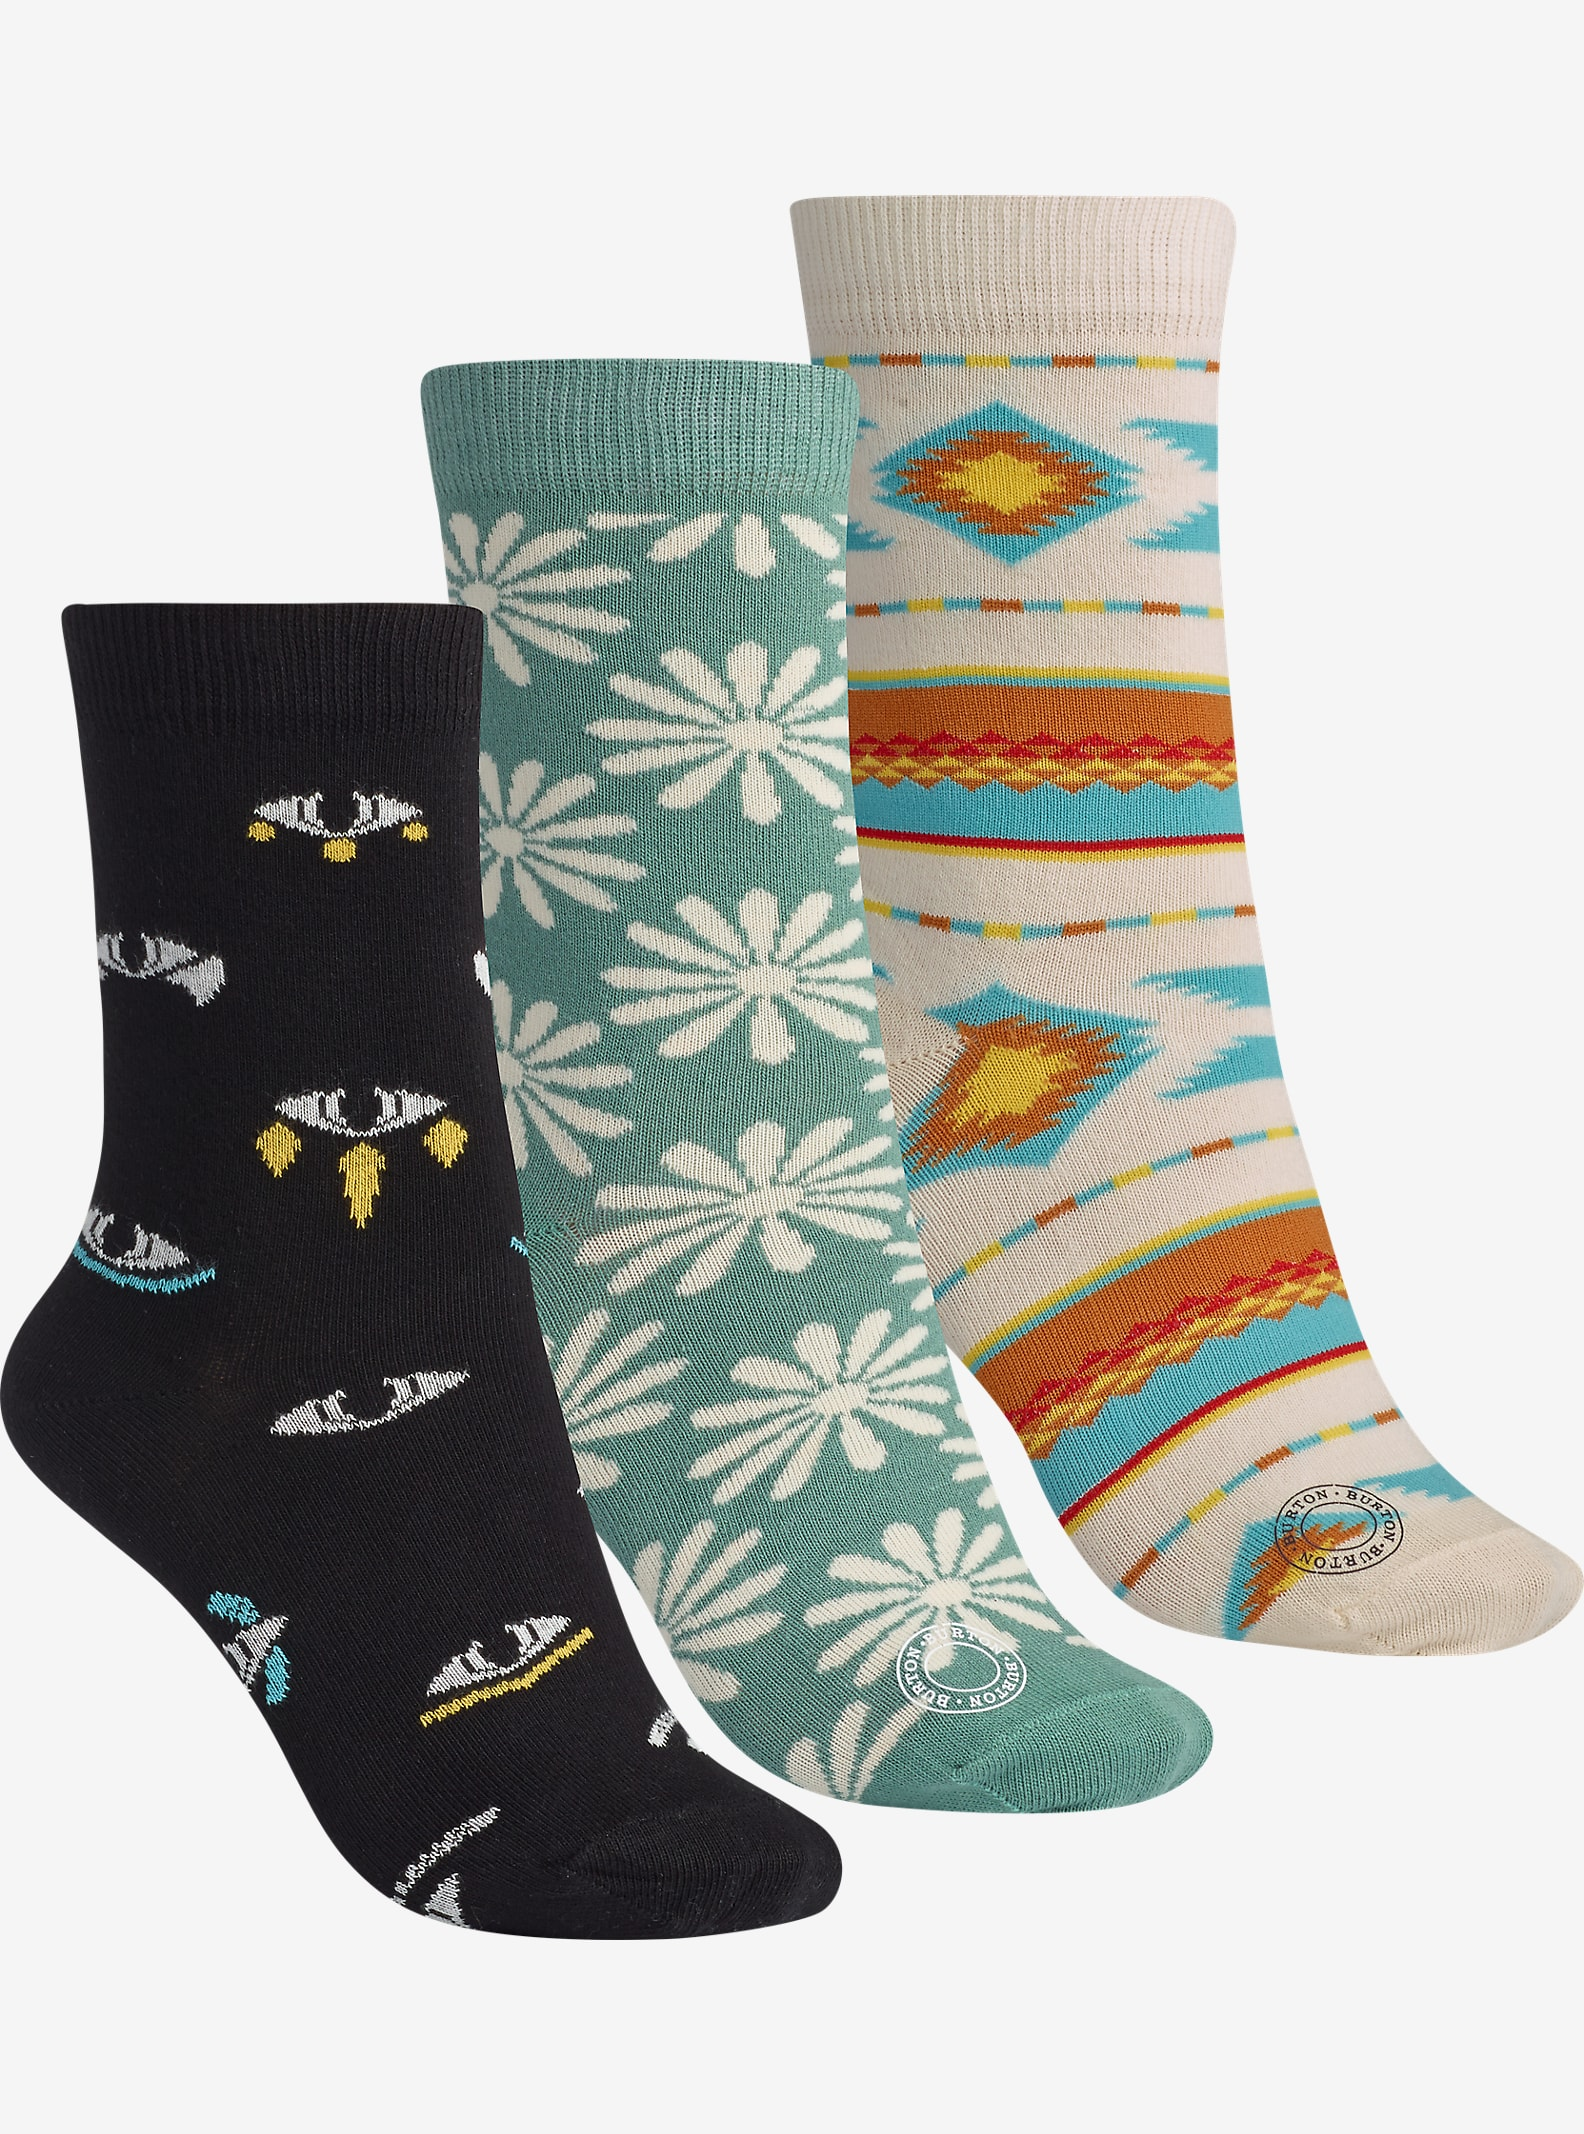 Burton Women's Apres Sock 3 Pack shown in Air Raid